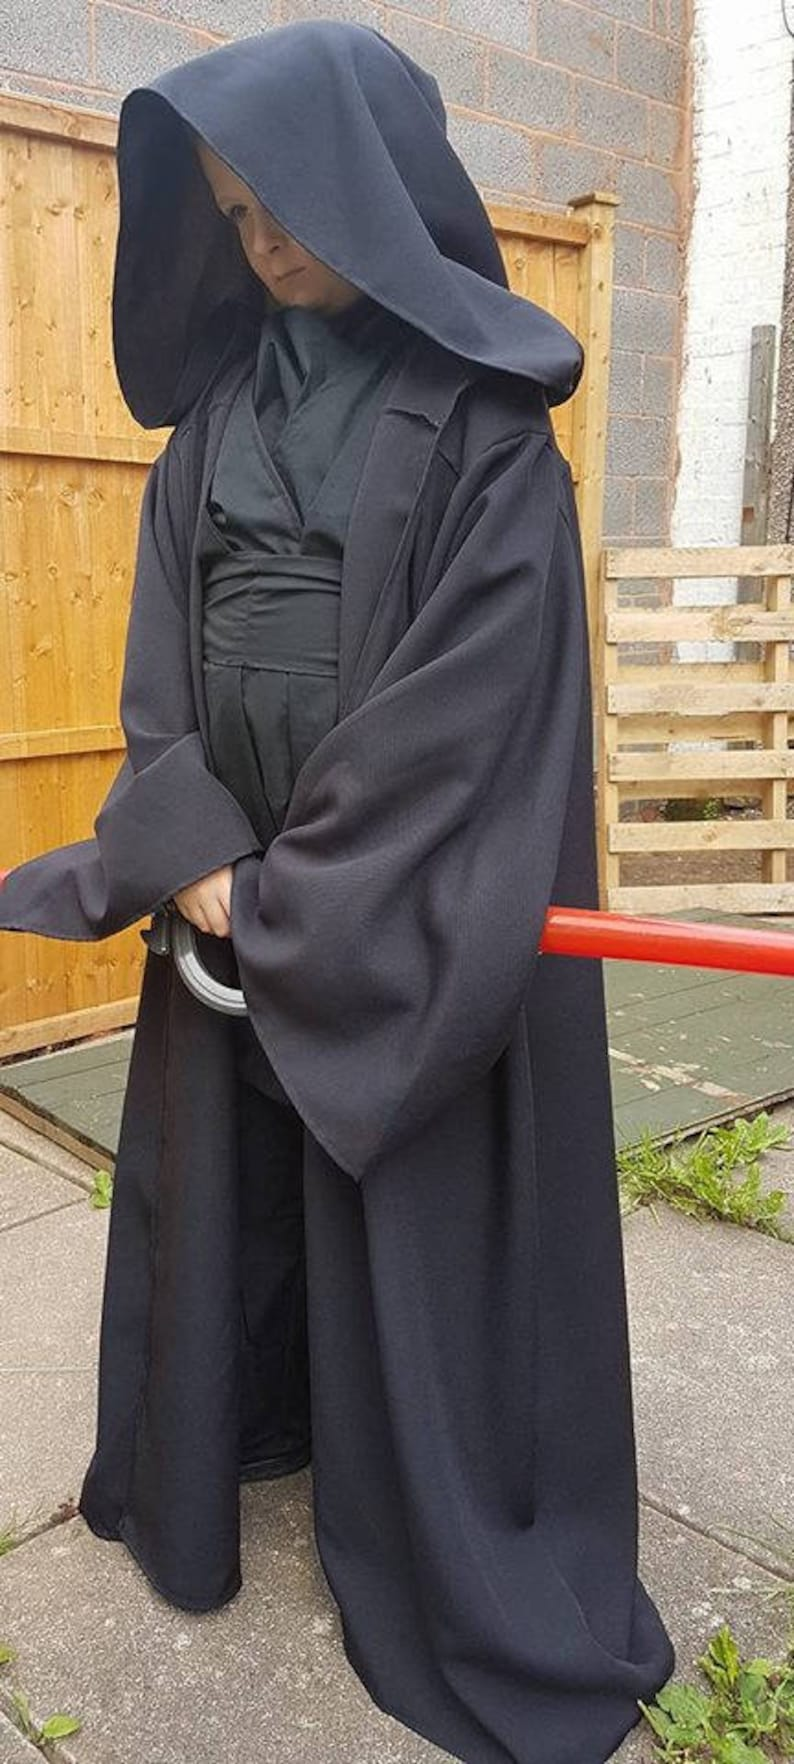 worldwide shipping Star wars costumes and cosplay Boys Sith Lord inspired costume Handmade in all sizes Jedi robes